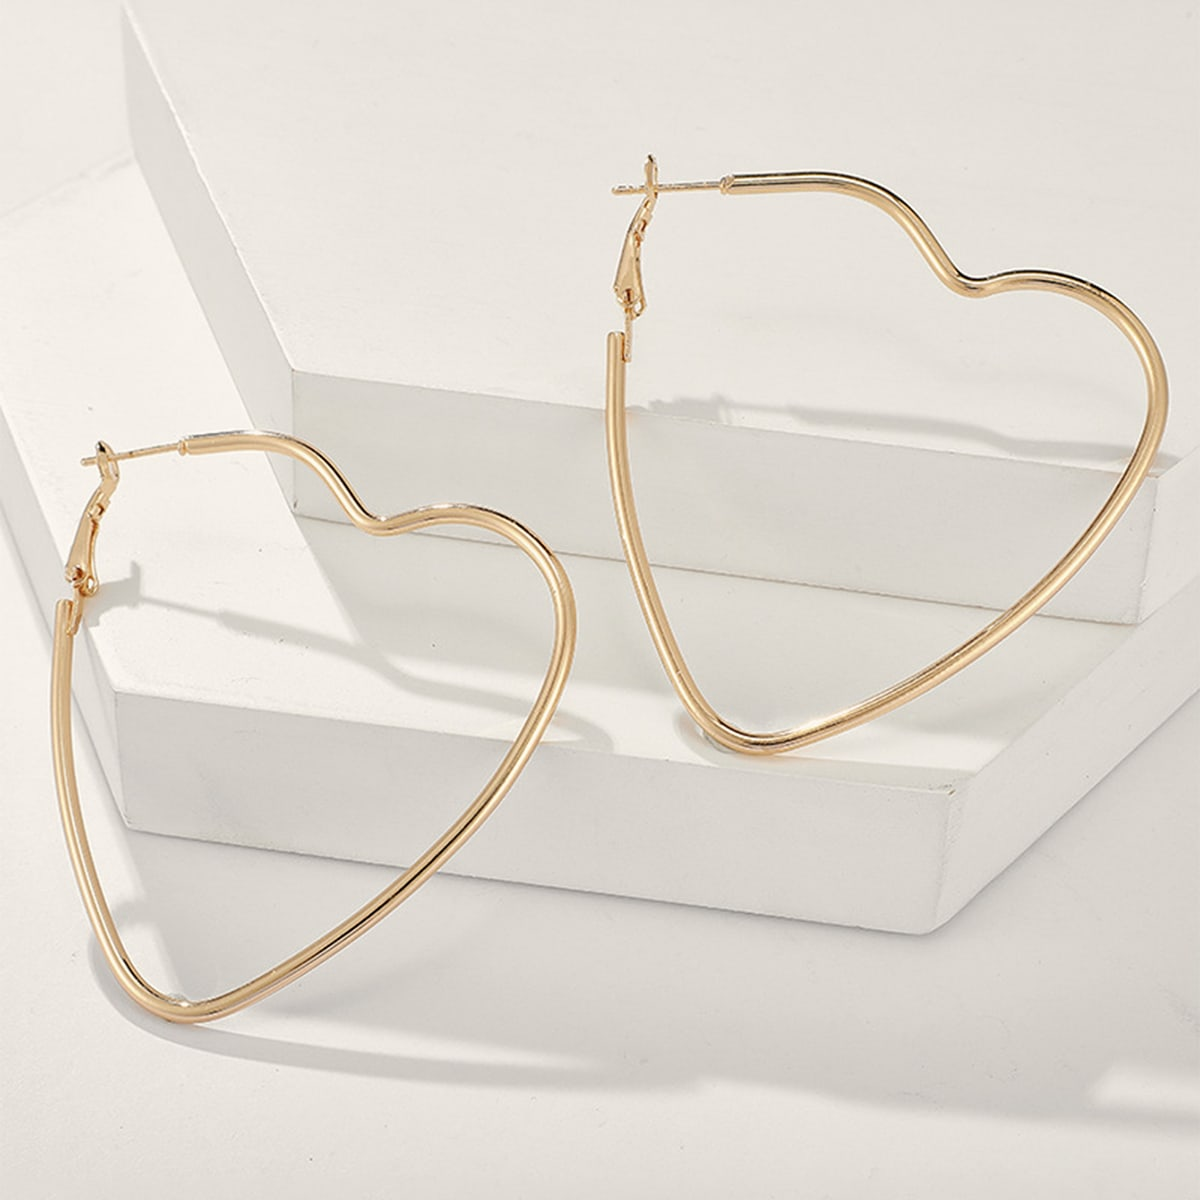 1pair Hollow Out Heart Design Earrings